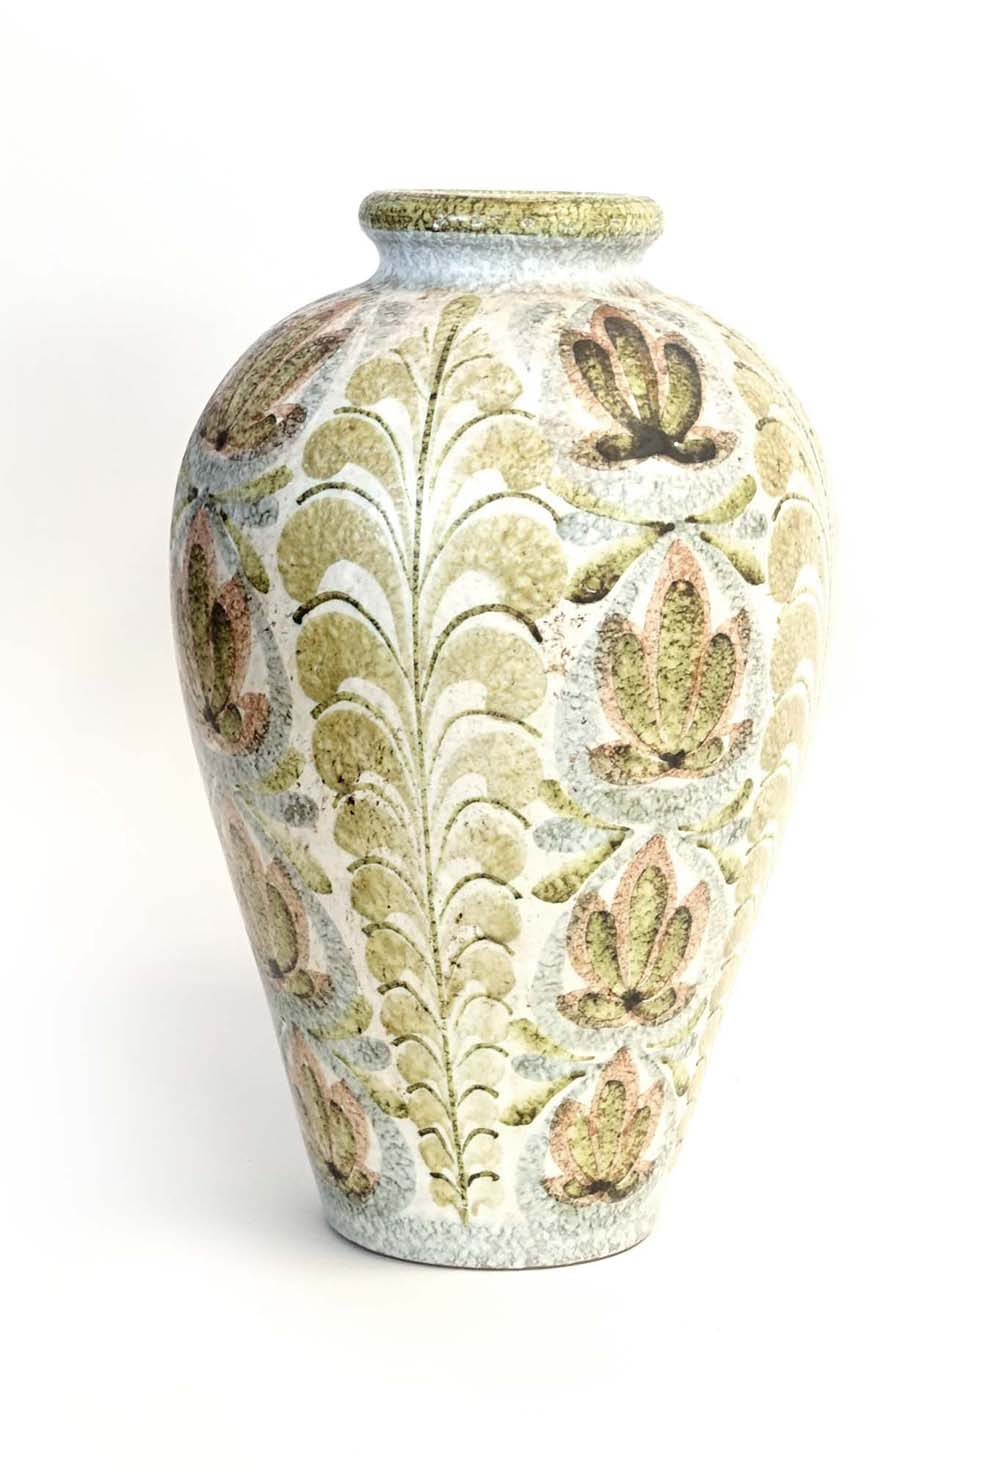 Lot 38 - Glyn Colledge for Denby, a baluster vase decorated with autumnal patterns, h.